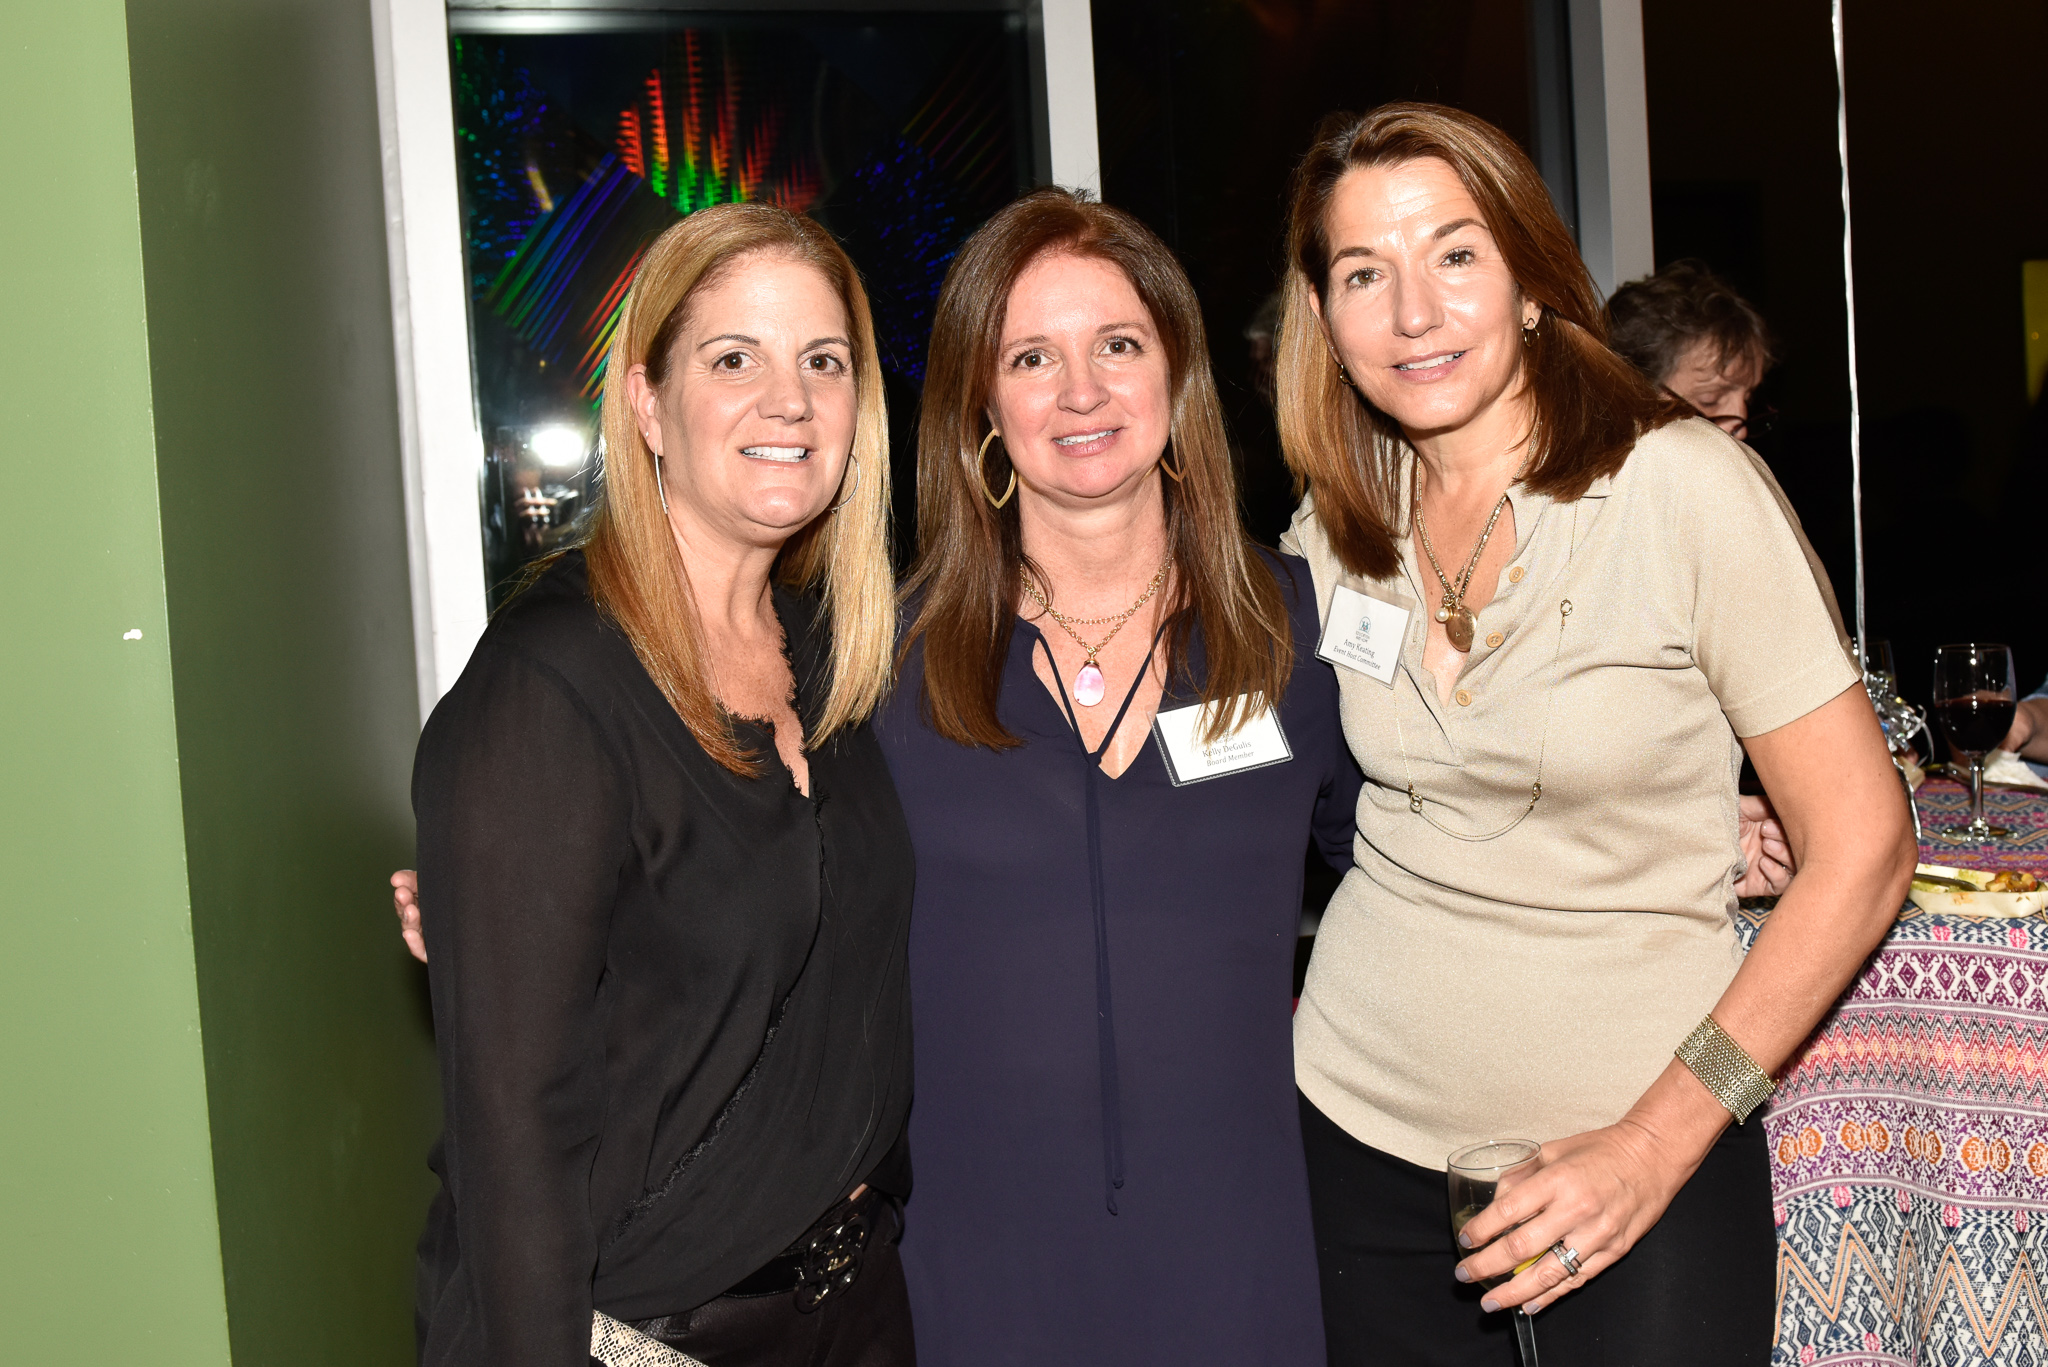 Dina Quirk, Kelly DeGulis, Amy Keating